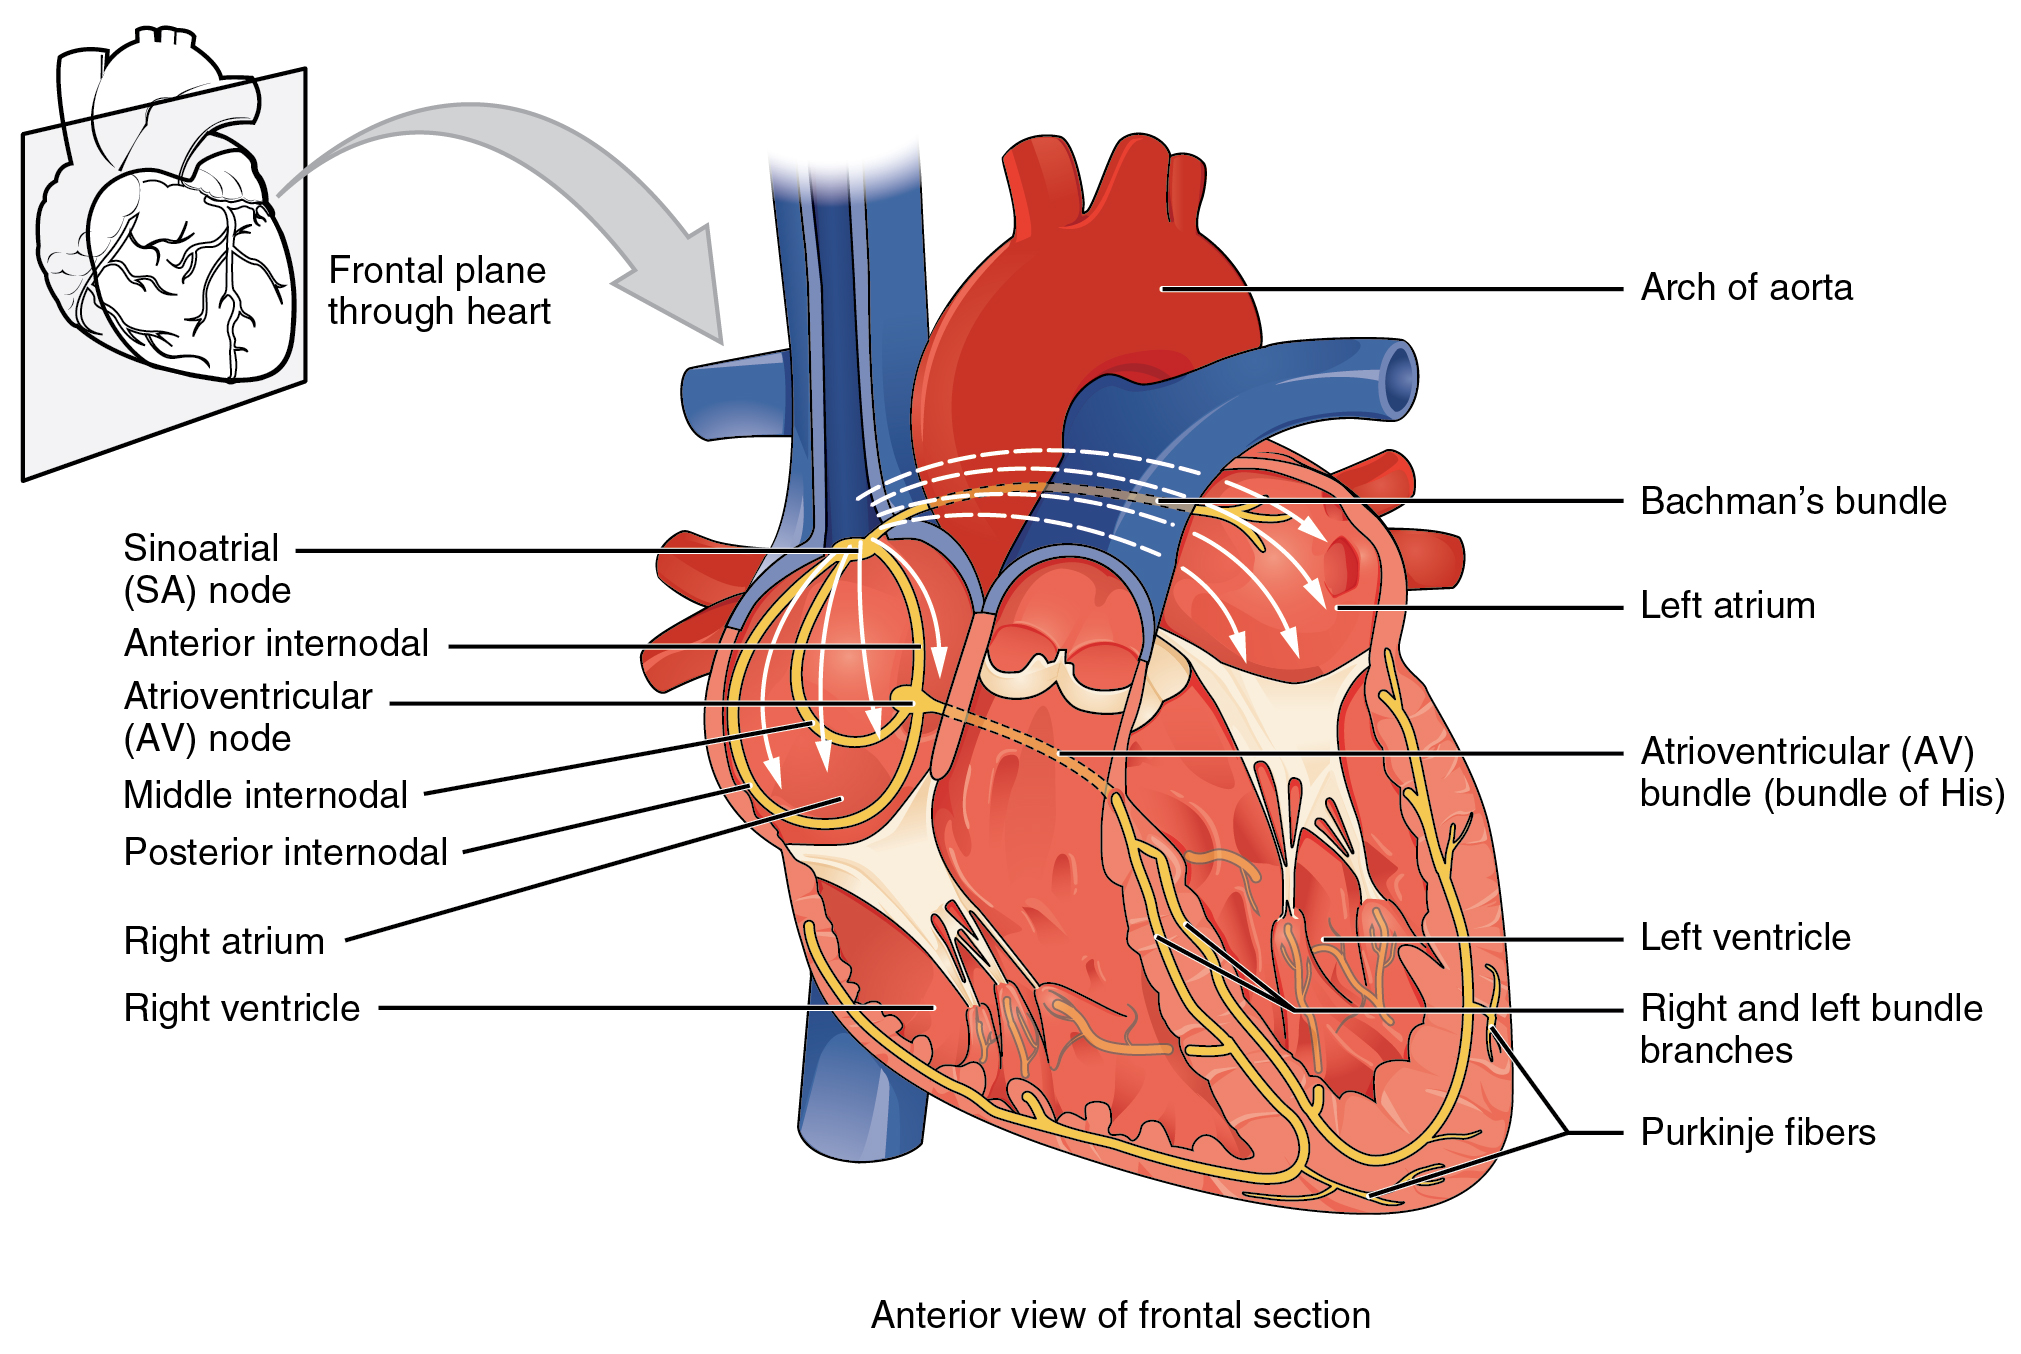 Illustration, with labels, showing anterior view of frontal section and frontal plane through heart.